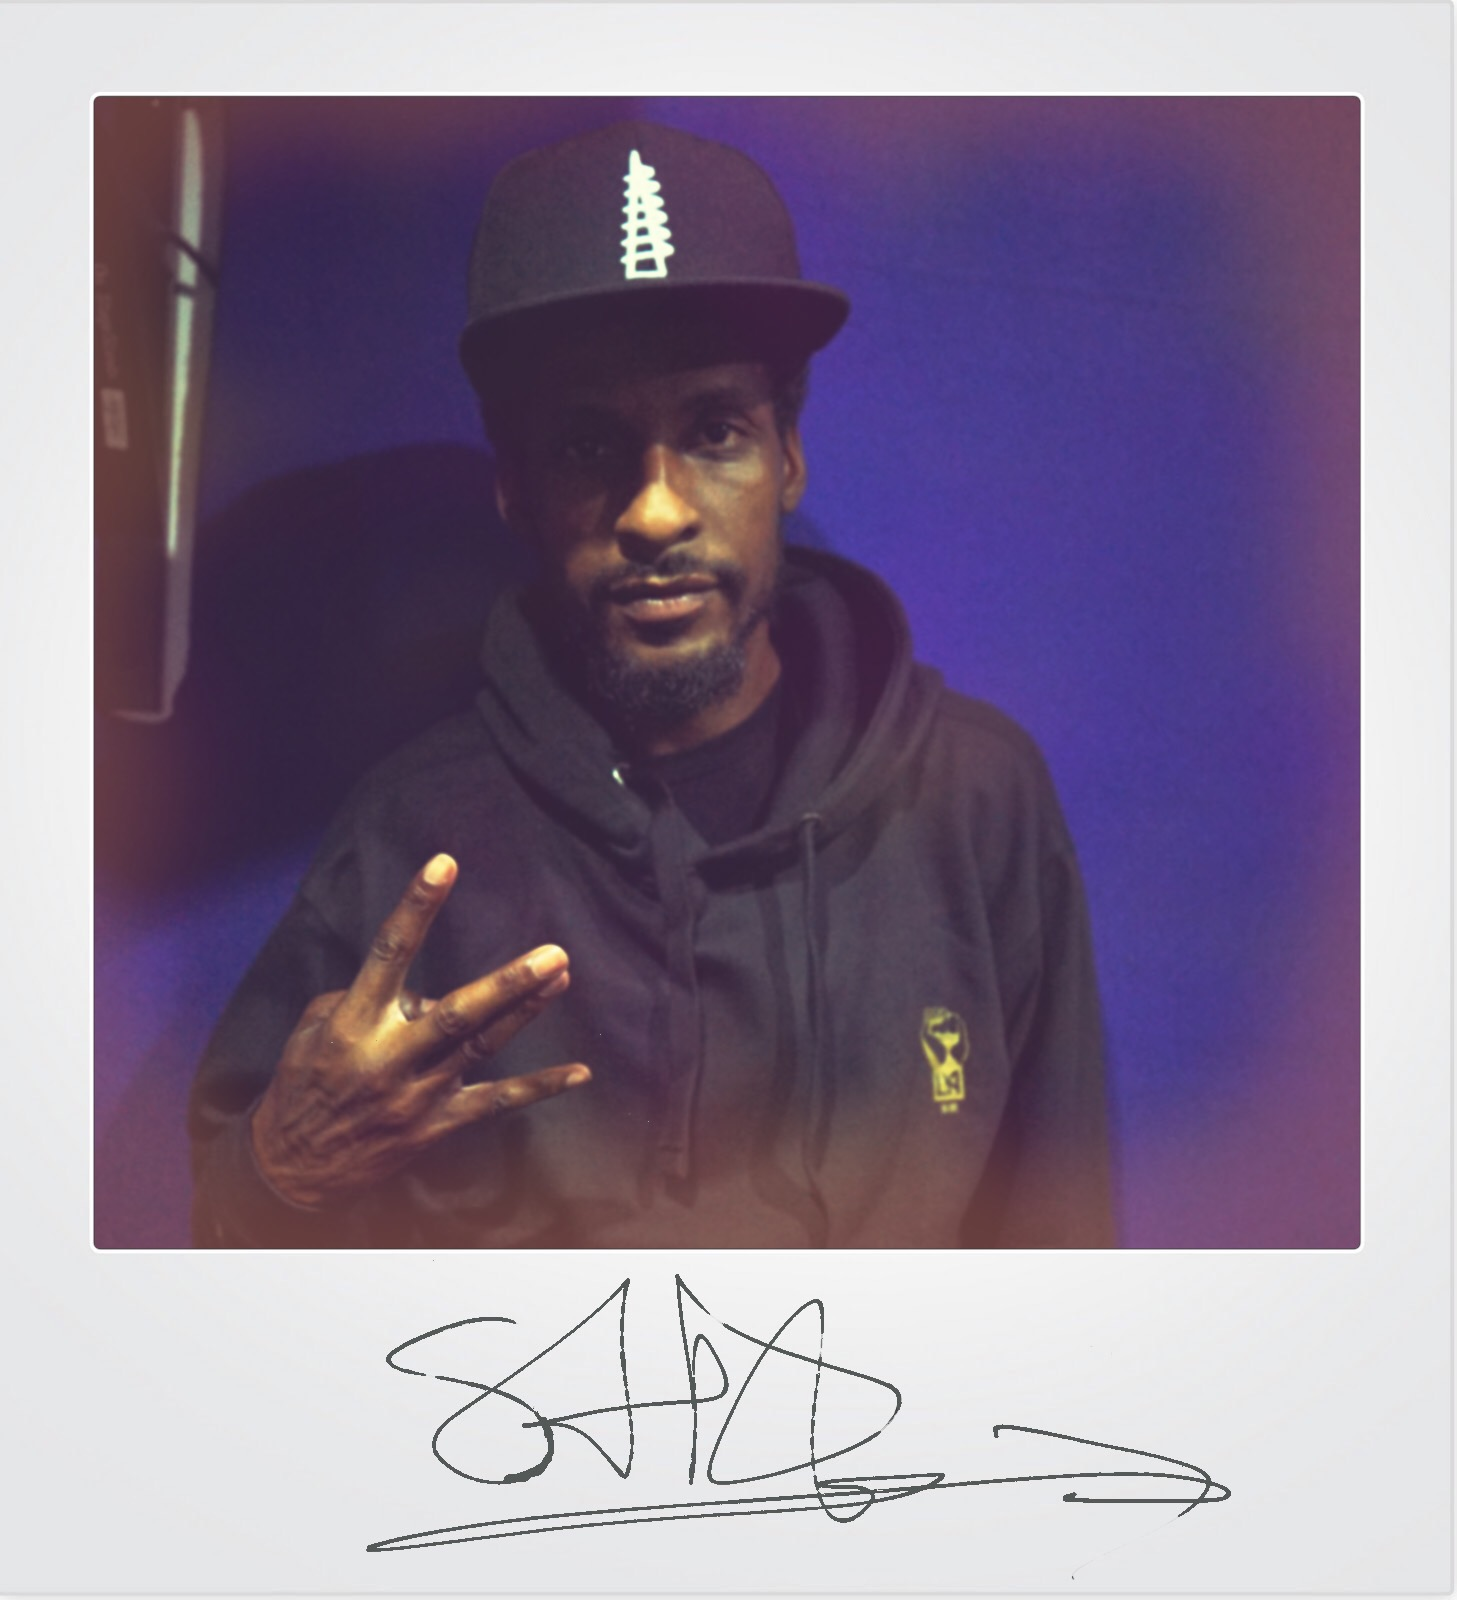 Episode 14 - Stix Interview - We have an insightful conversation with Watts' own Stix, a rapper, producer and OG krumper who is doing awesome work in the community and is behind the scenes on a lot more than you'd realize.